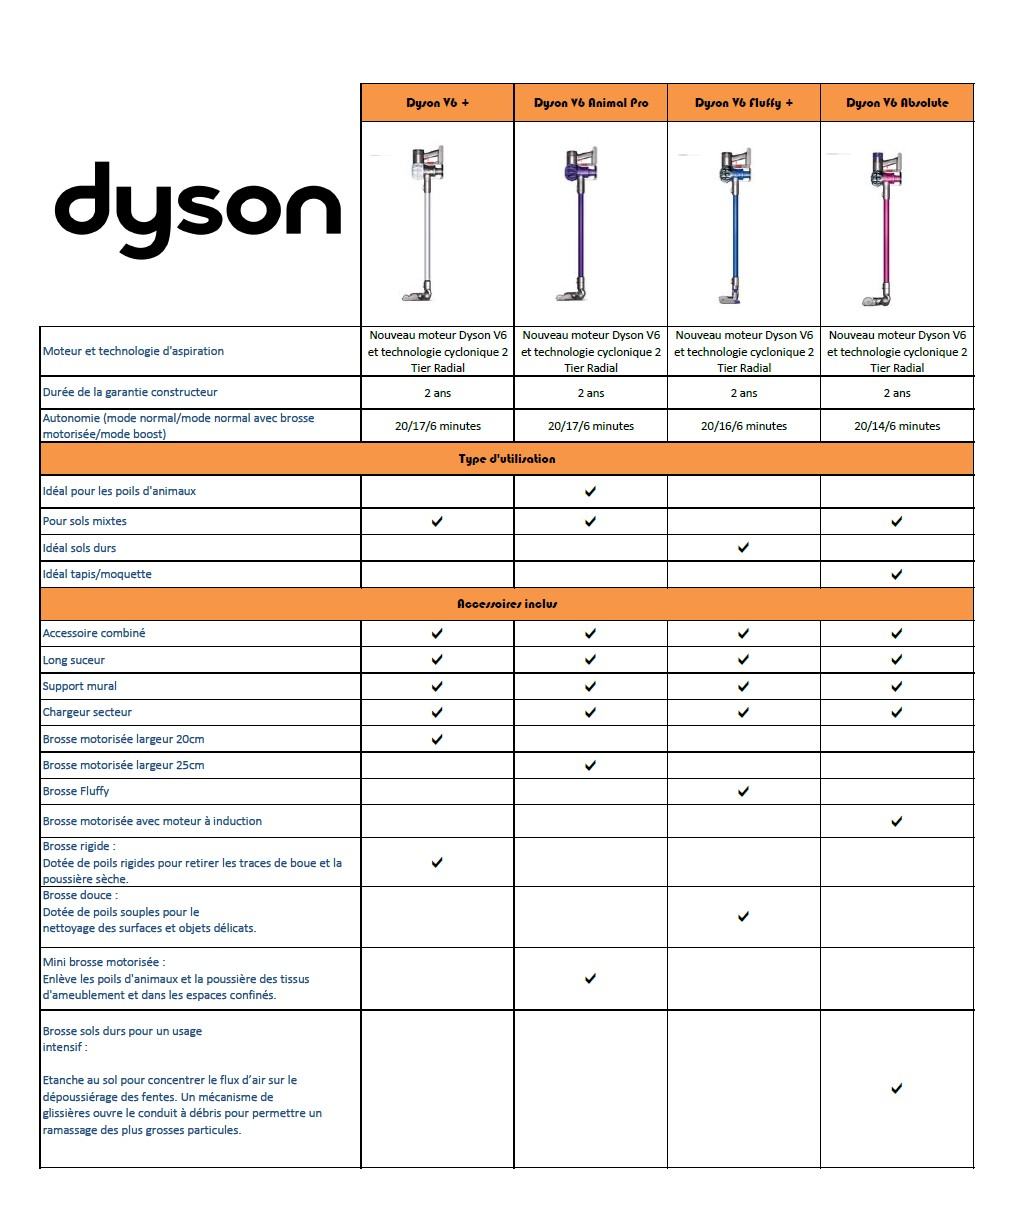 aspirateur balai v6 animal pro dyson pas cher prix auchan. Black Bedroom Furniture Sets. Home Design Ideas